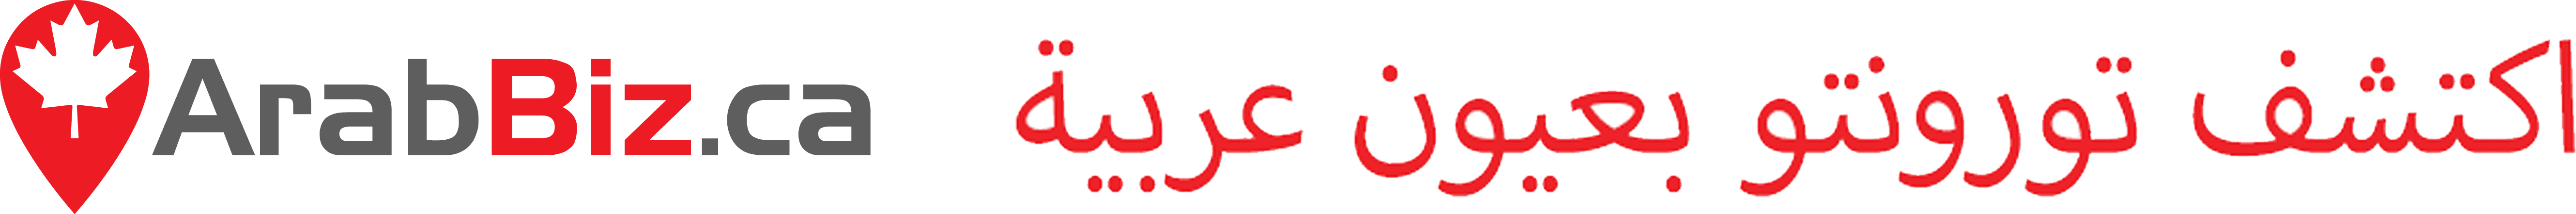 Arab Canadian Business Directory | Arabiz.ca